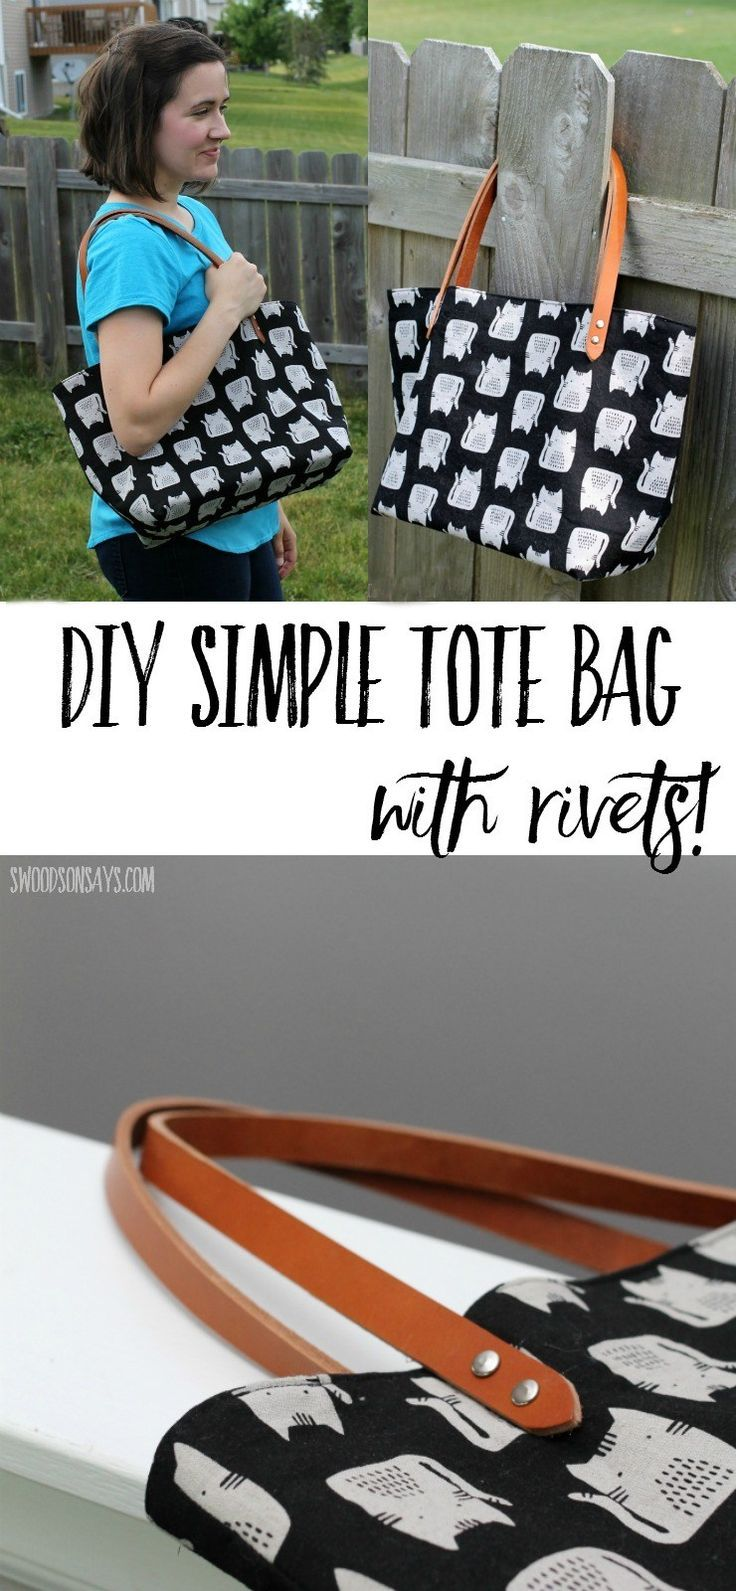 See this DIY canvas tote bag that I sewed up in an afternoon - it even has metal rivets! The pre-drilled leather handles make it super easy and look professional. Perfect tote bag to sew for beginners. Free pattern from Crosscut Sewing, linked in the post